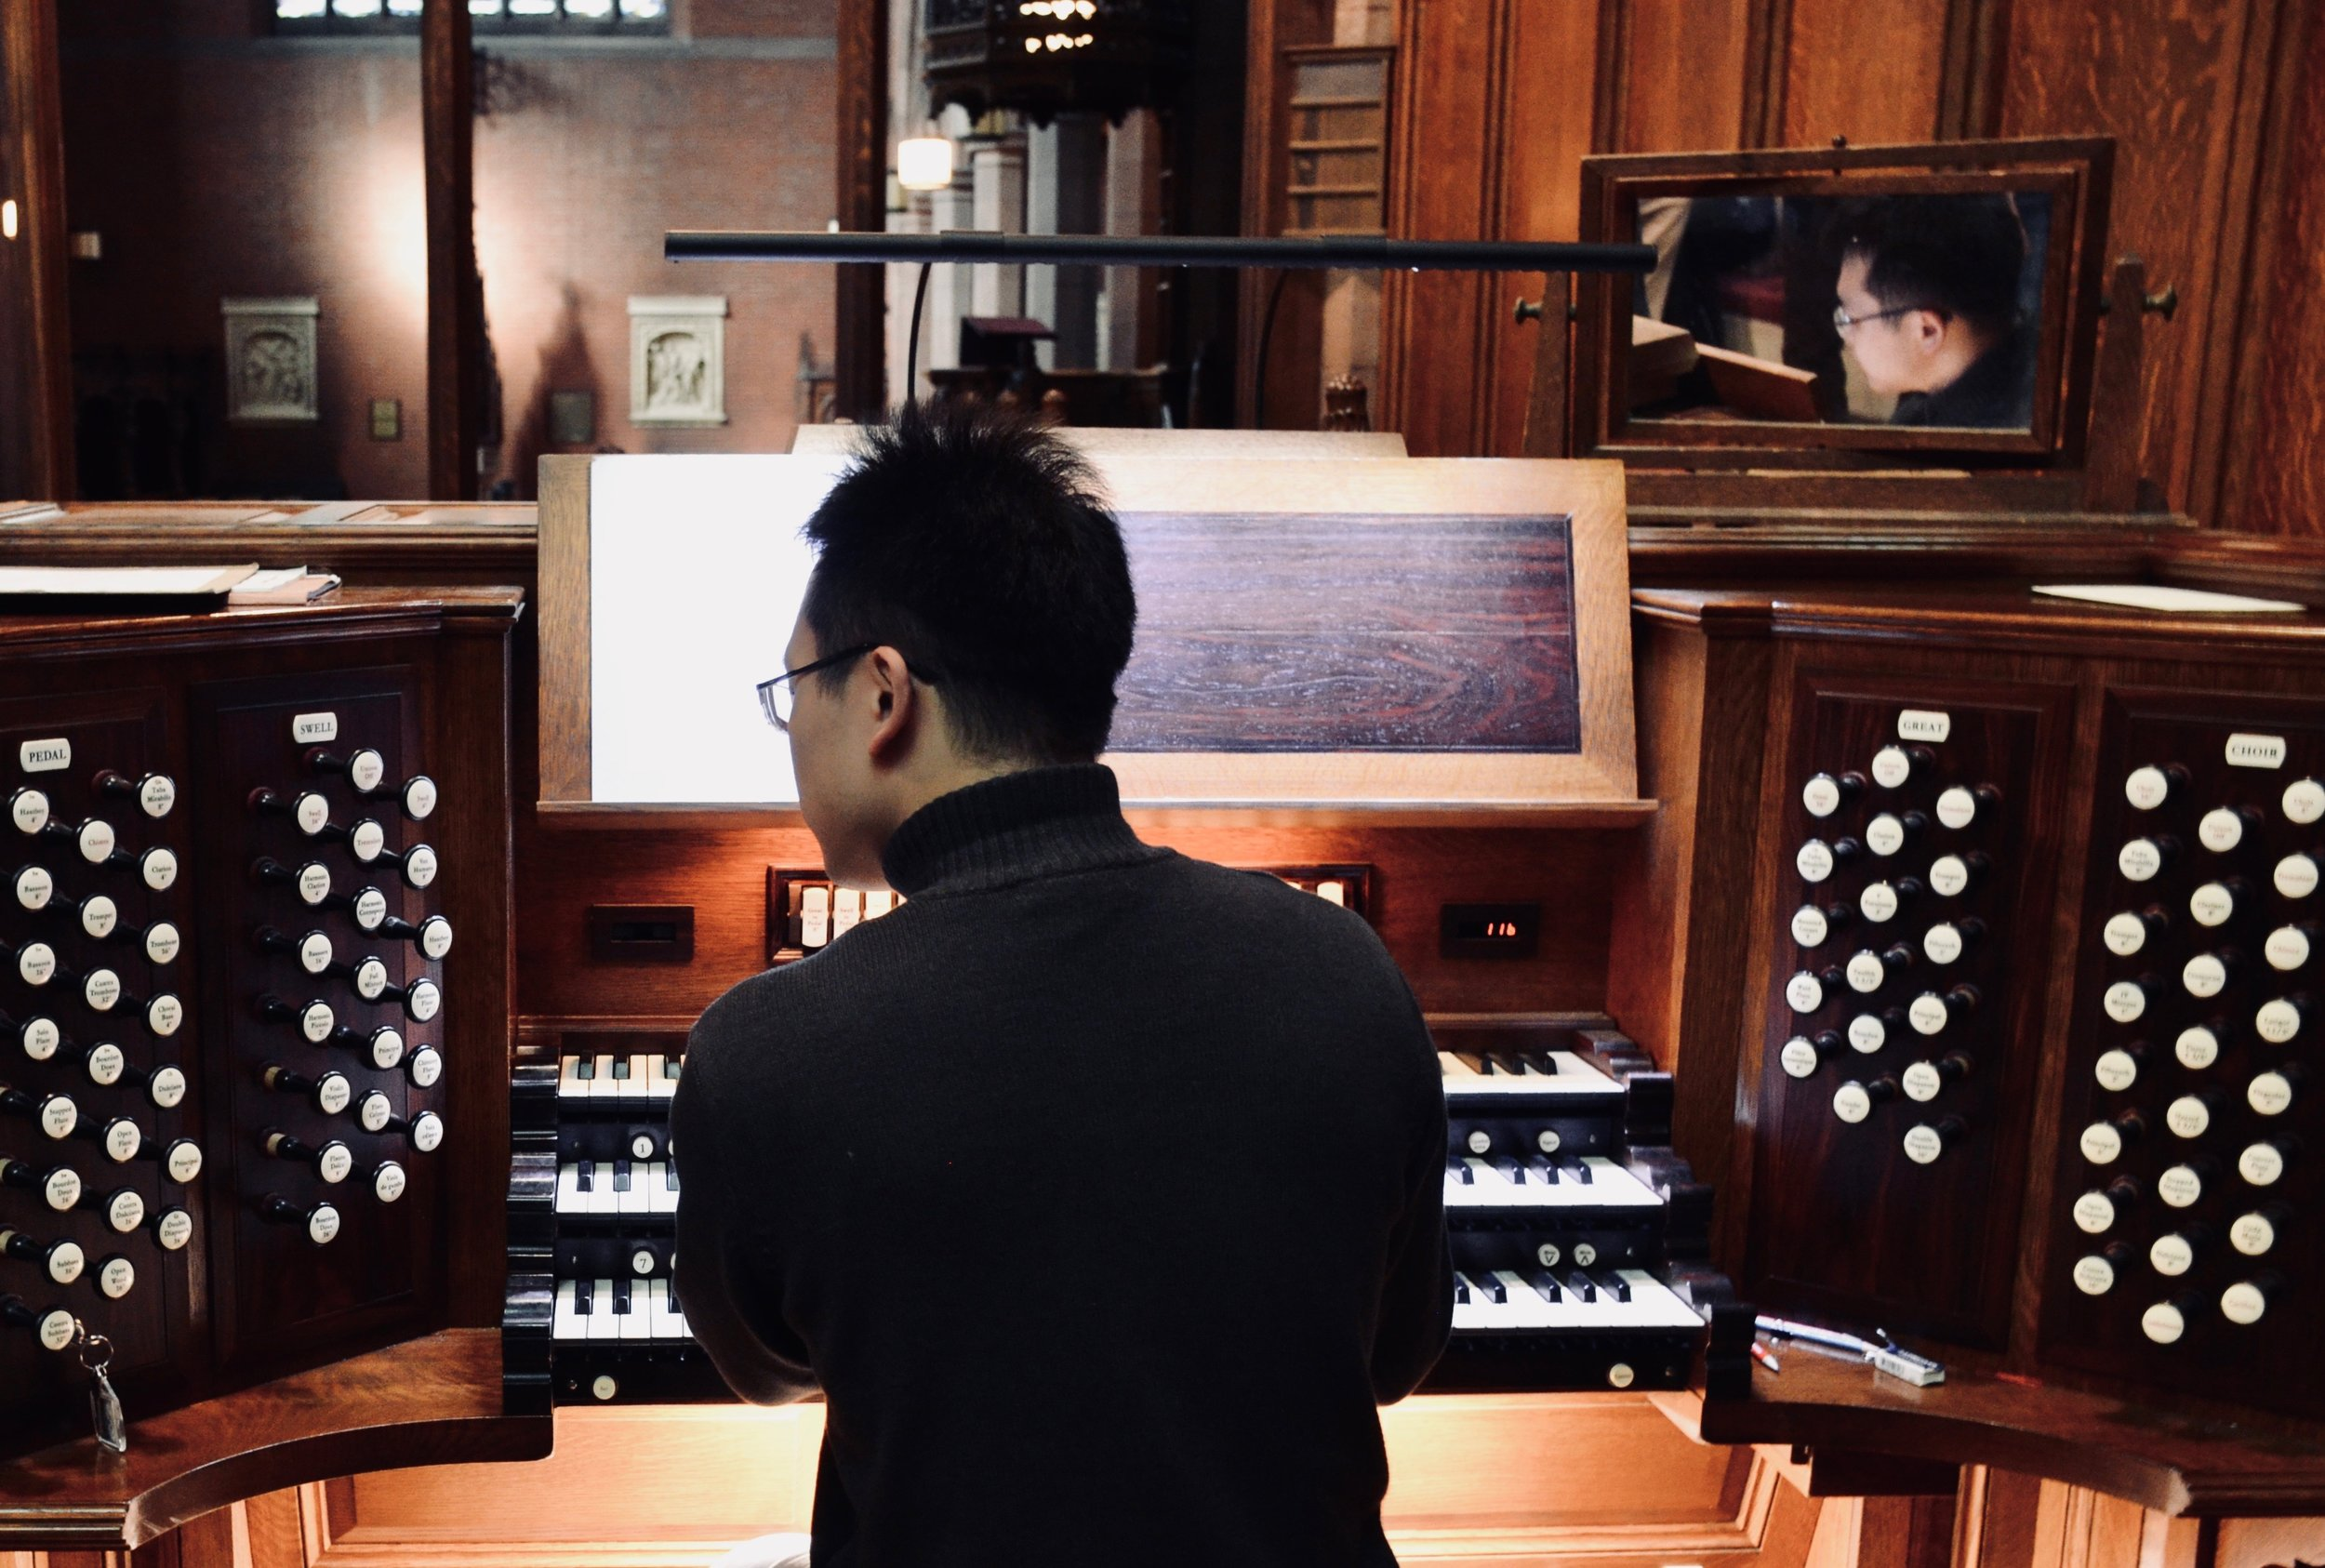 Adrian Cho at the console in Christ Church, New Haven.